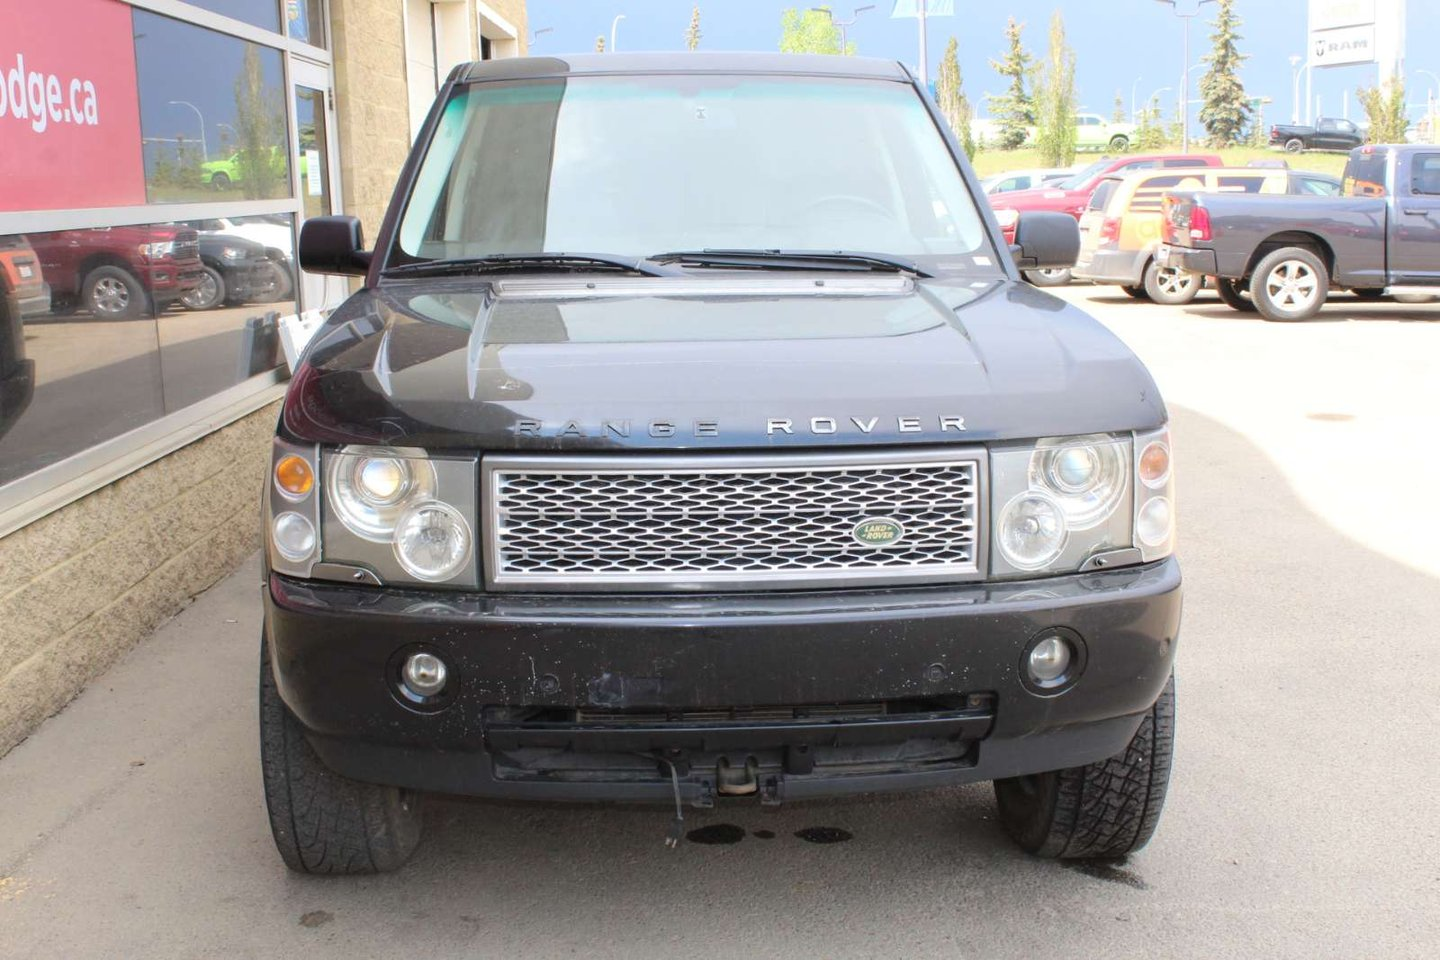 2004 Land Rover Range Rover HSE for sale in Edmonton, Alberta